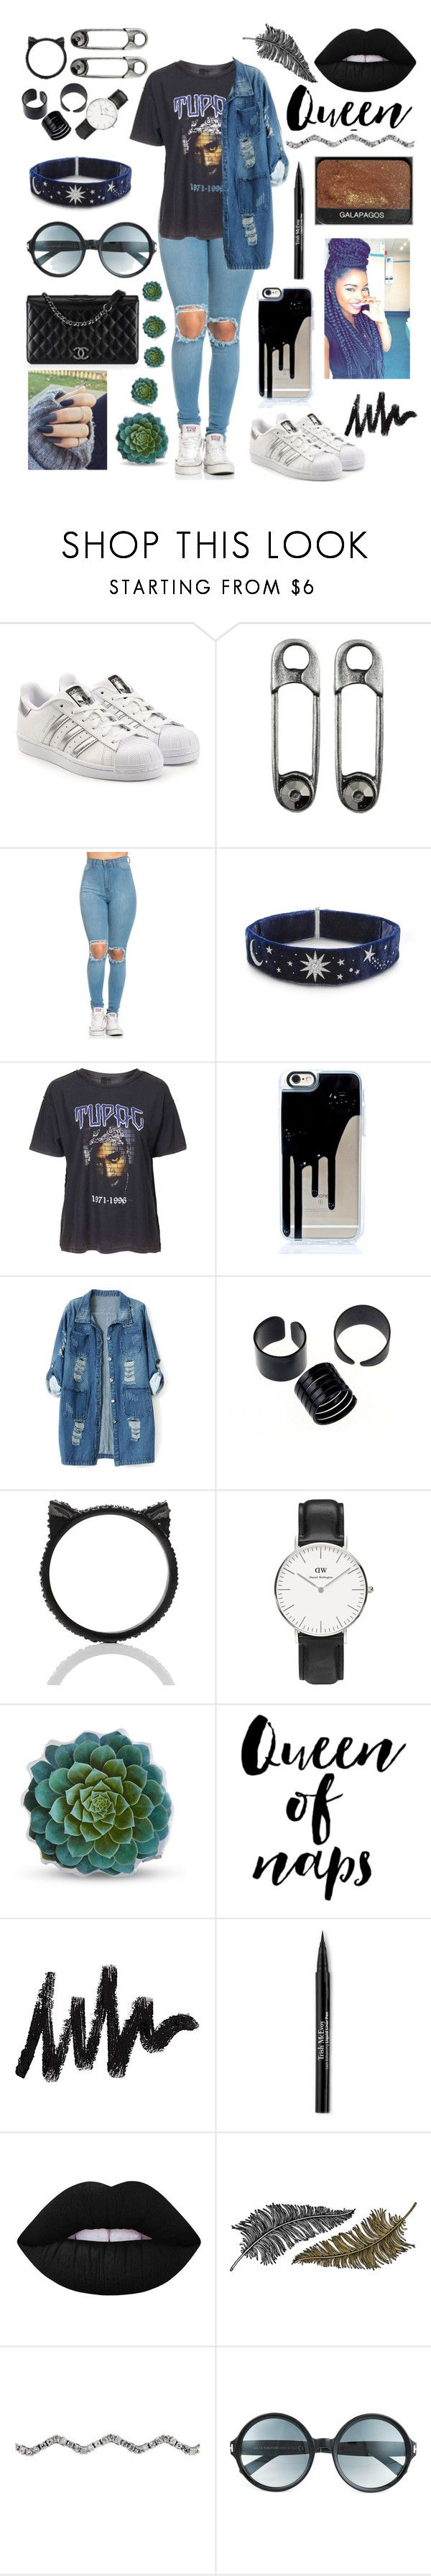 """""""💜2PAC💜"""" by raven-so-cute ❤ liked on Polyvore featuring adidas Originals, Topshop, Chanel, Chicnova Fashion, Kate Spade, Daniel Wellington, Dot & Bo, WALL, Trish McEvoy and Lime Crime"""